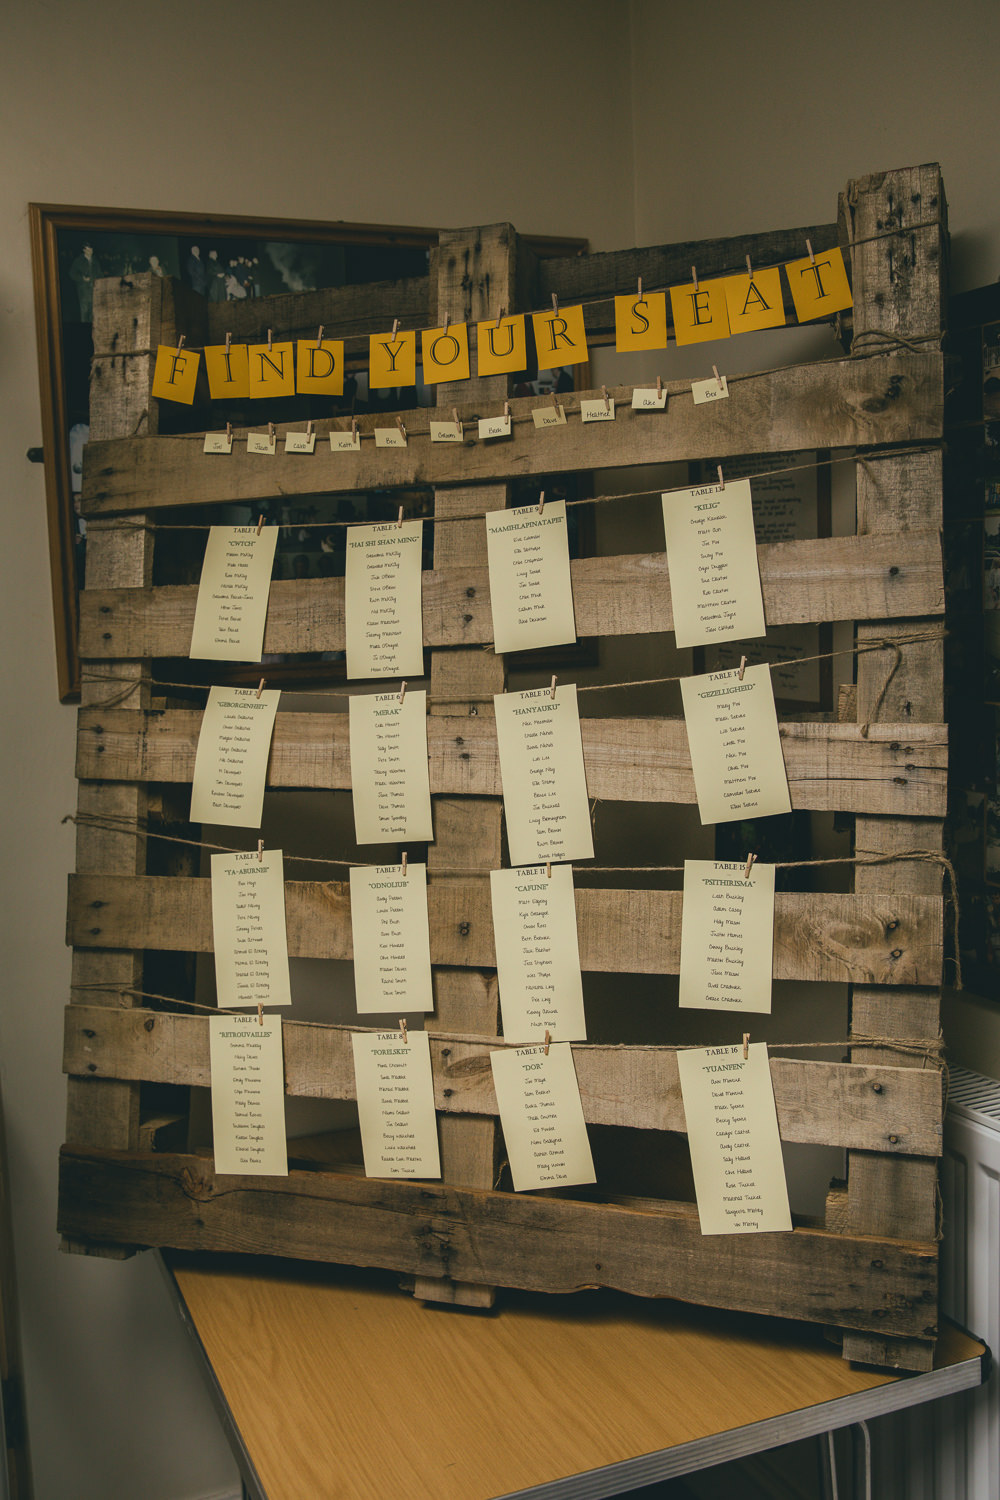 Seating Plan Table Chart Wooden Pallet Damerham Village Hall Wedding Lisa-Marie Halliday Photography